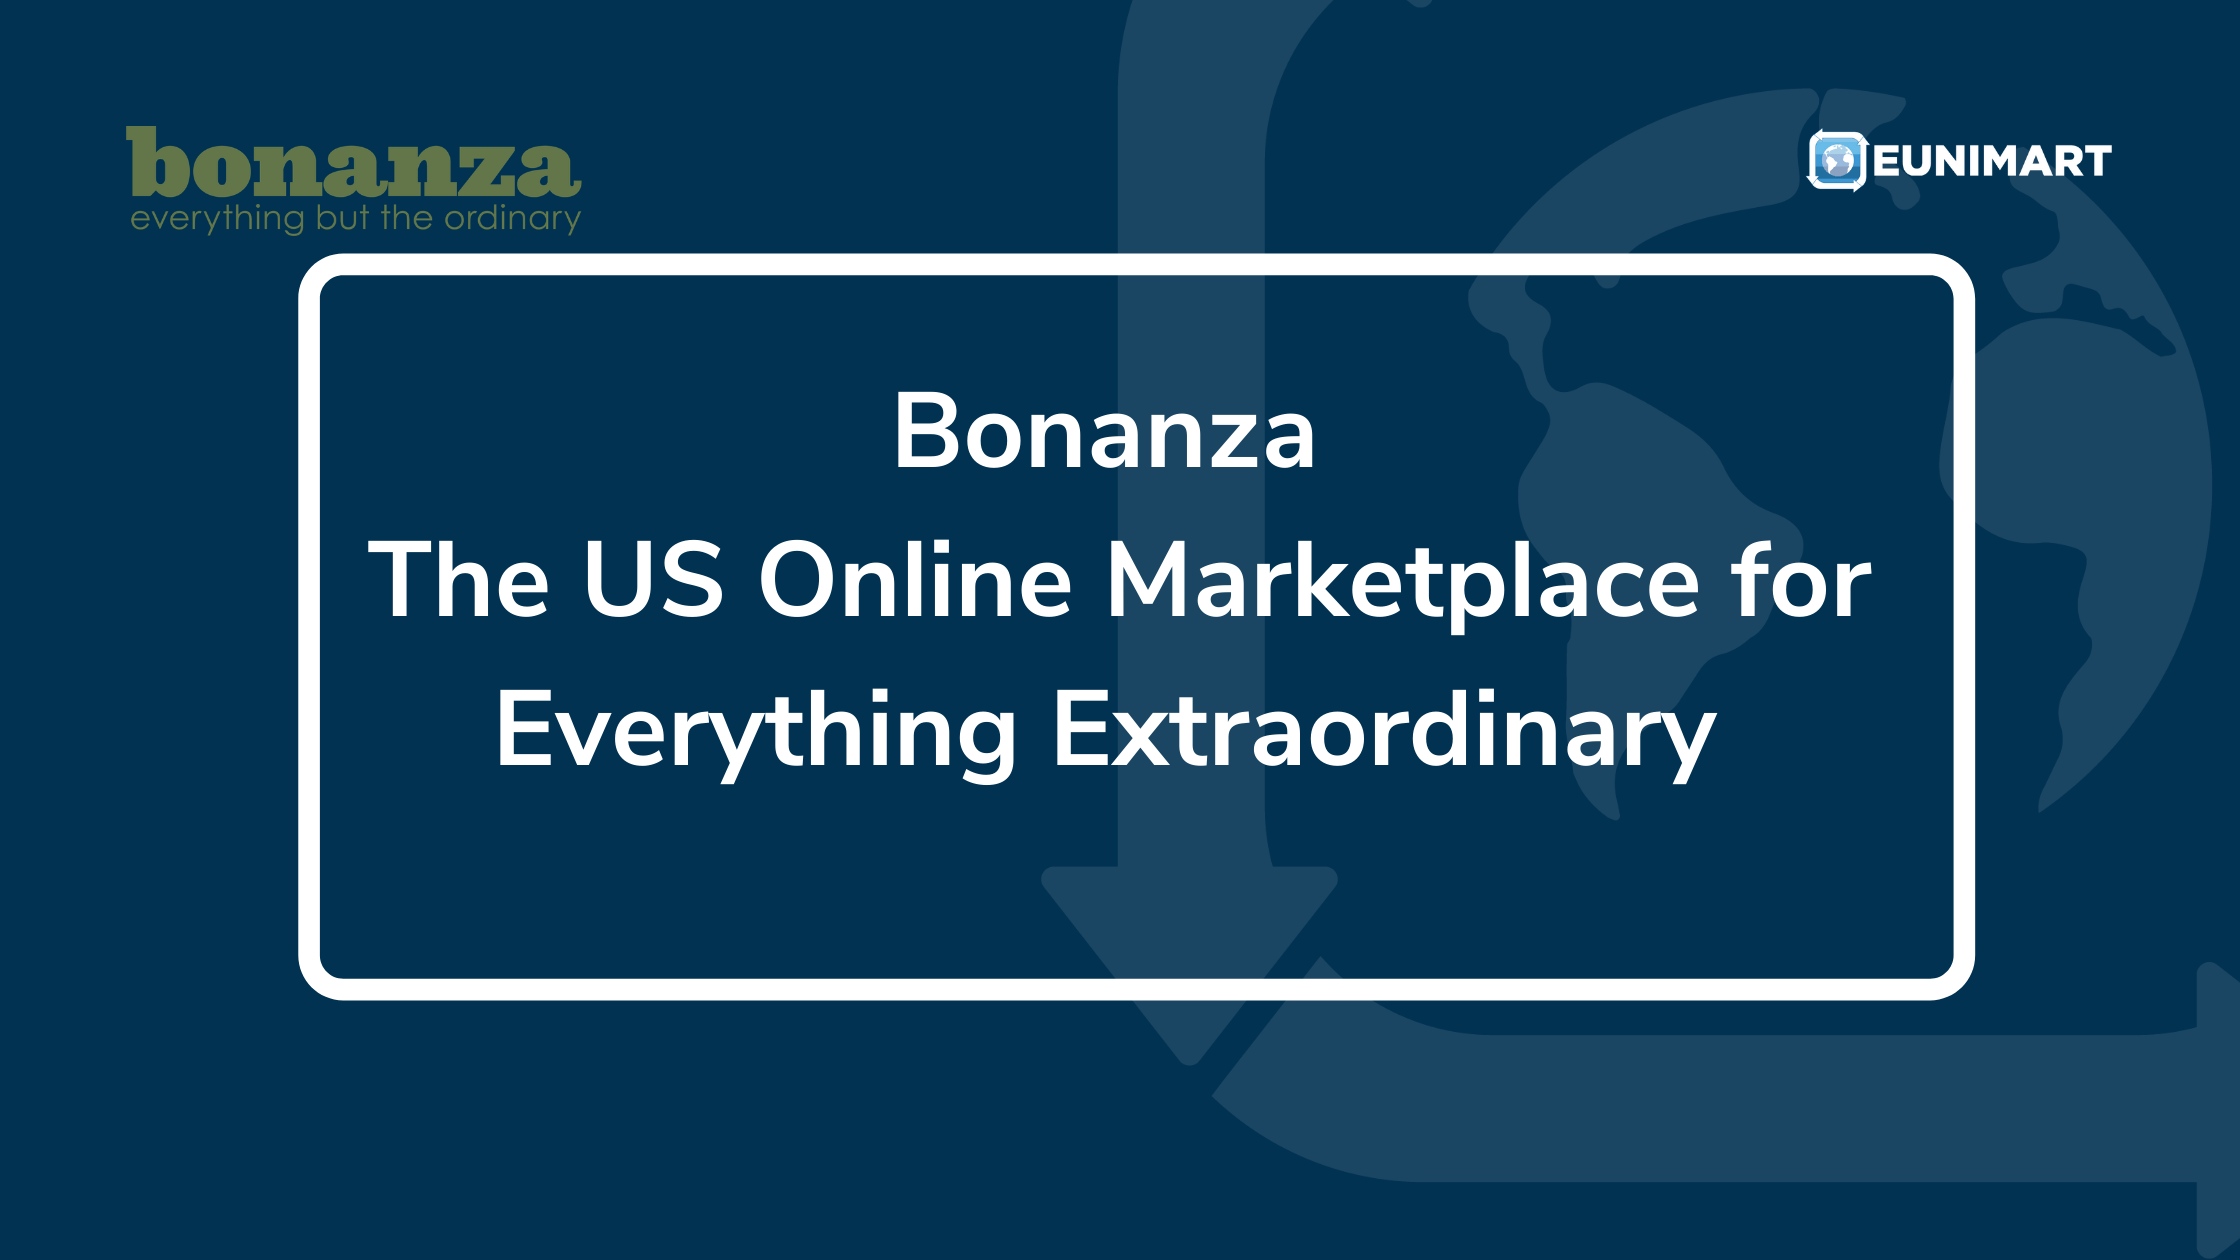 Bonanza- The US Online Marketplace for Everything Extraordinary